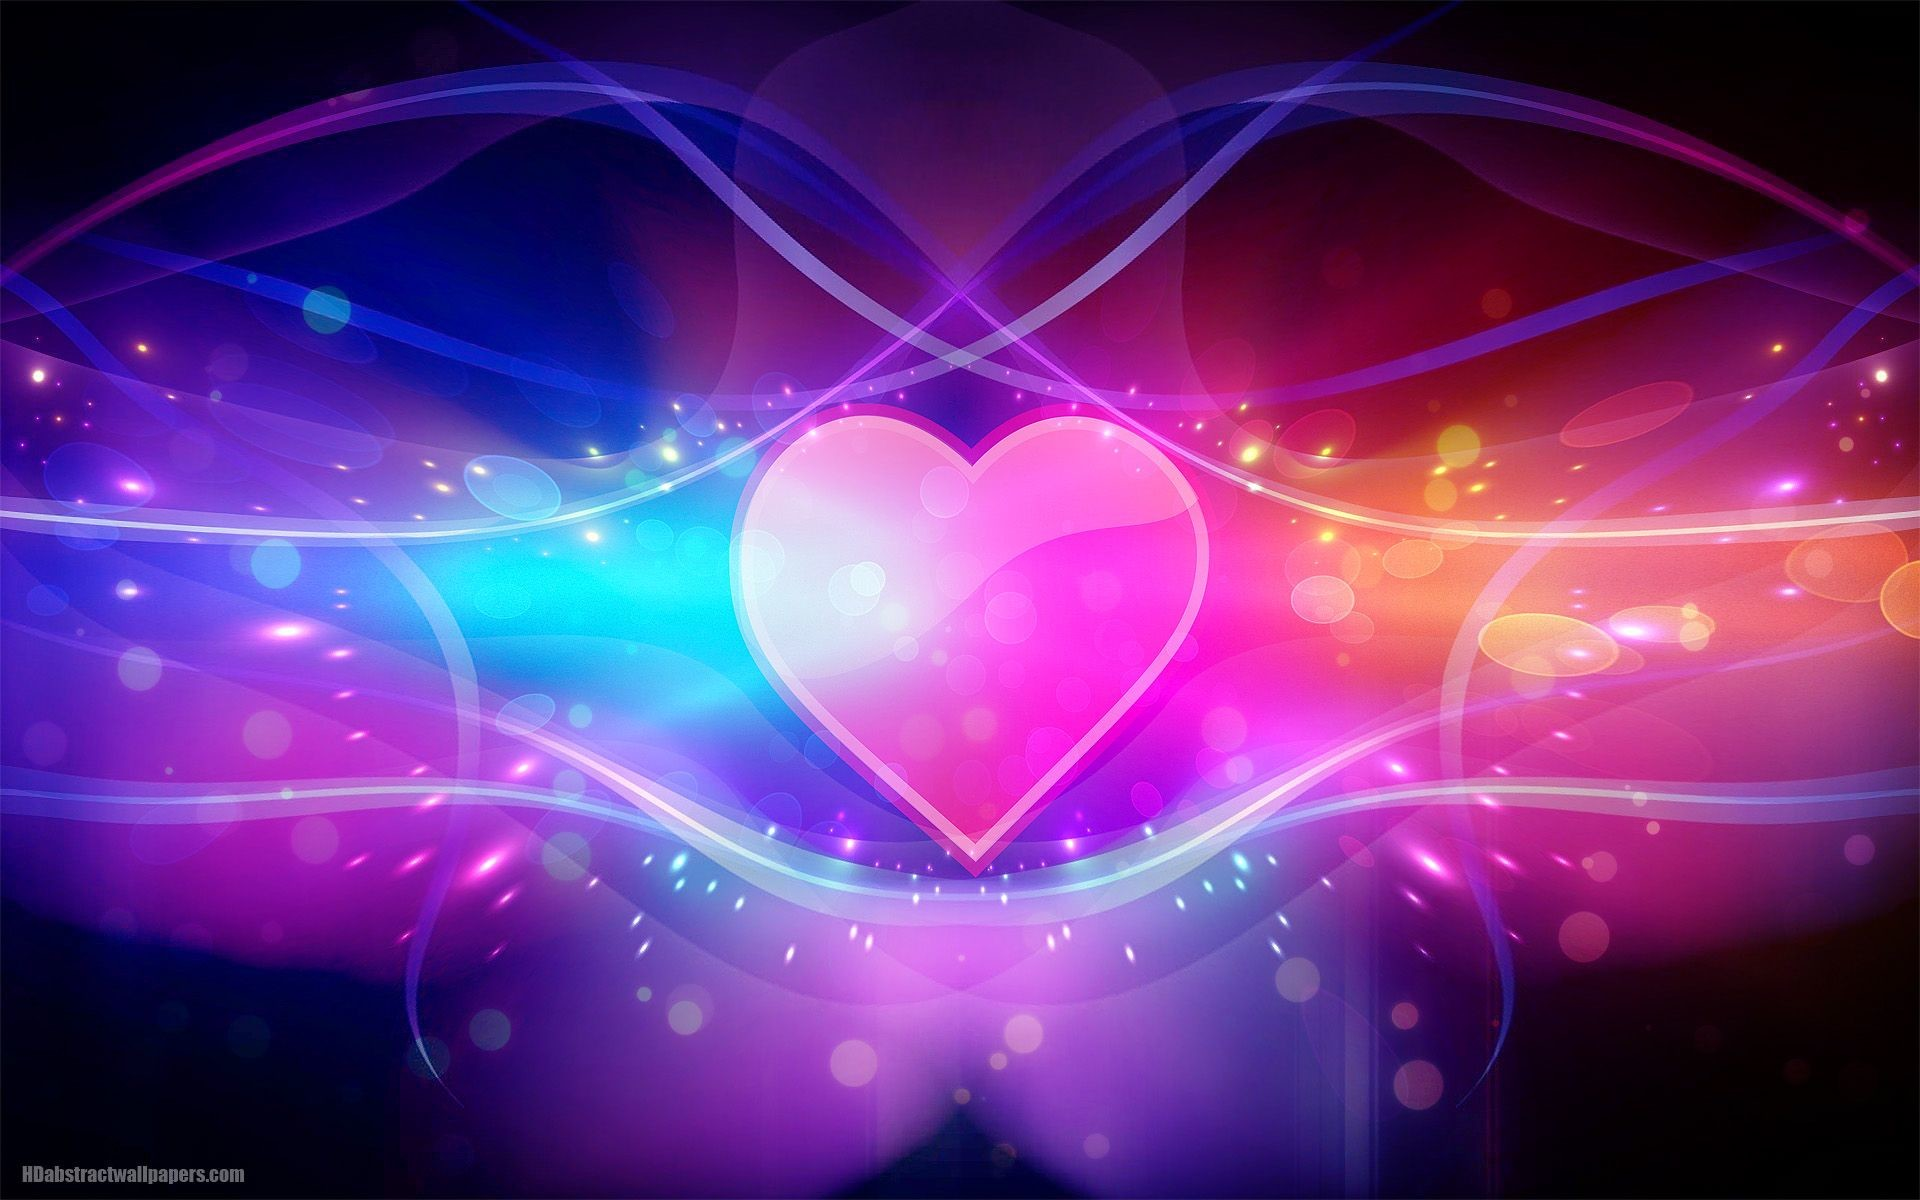 Colorful abstract wallpaper with pink love heart